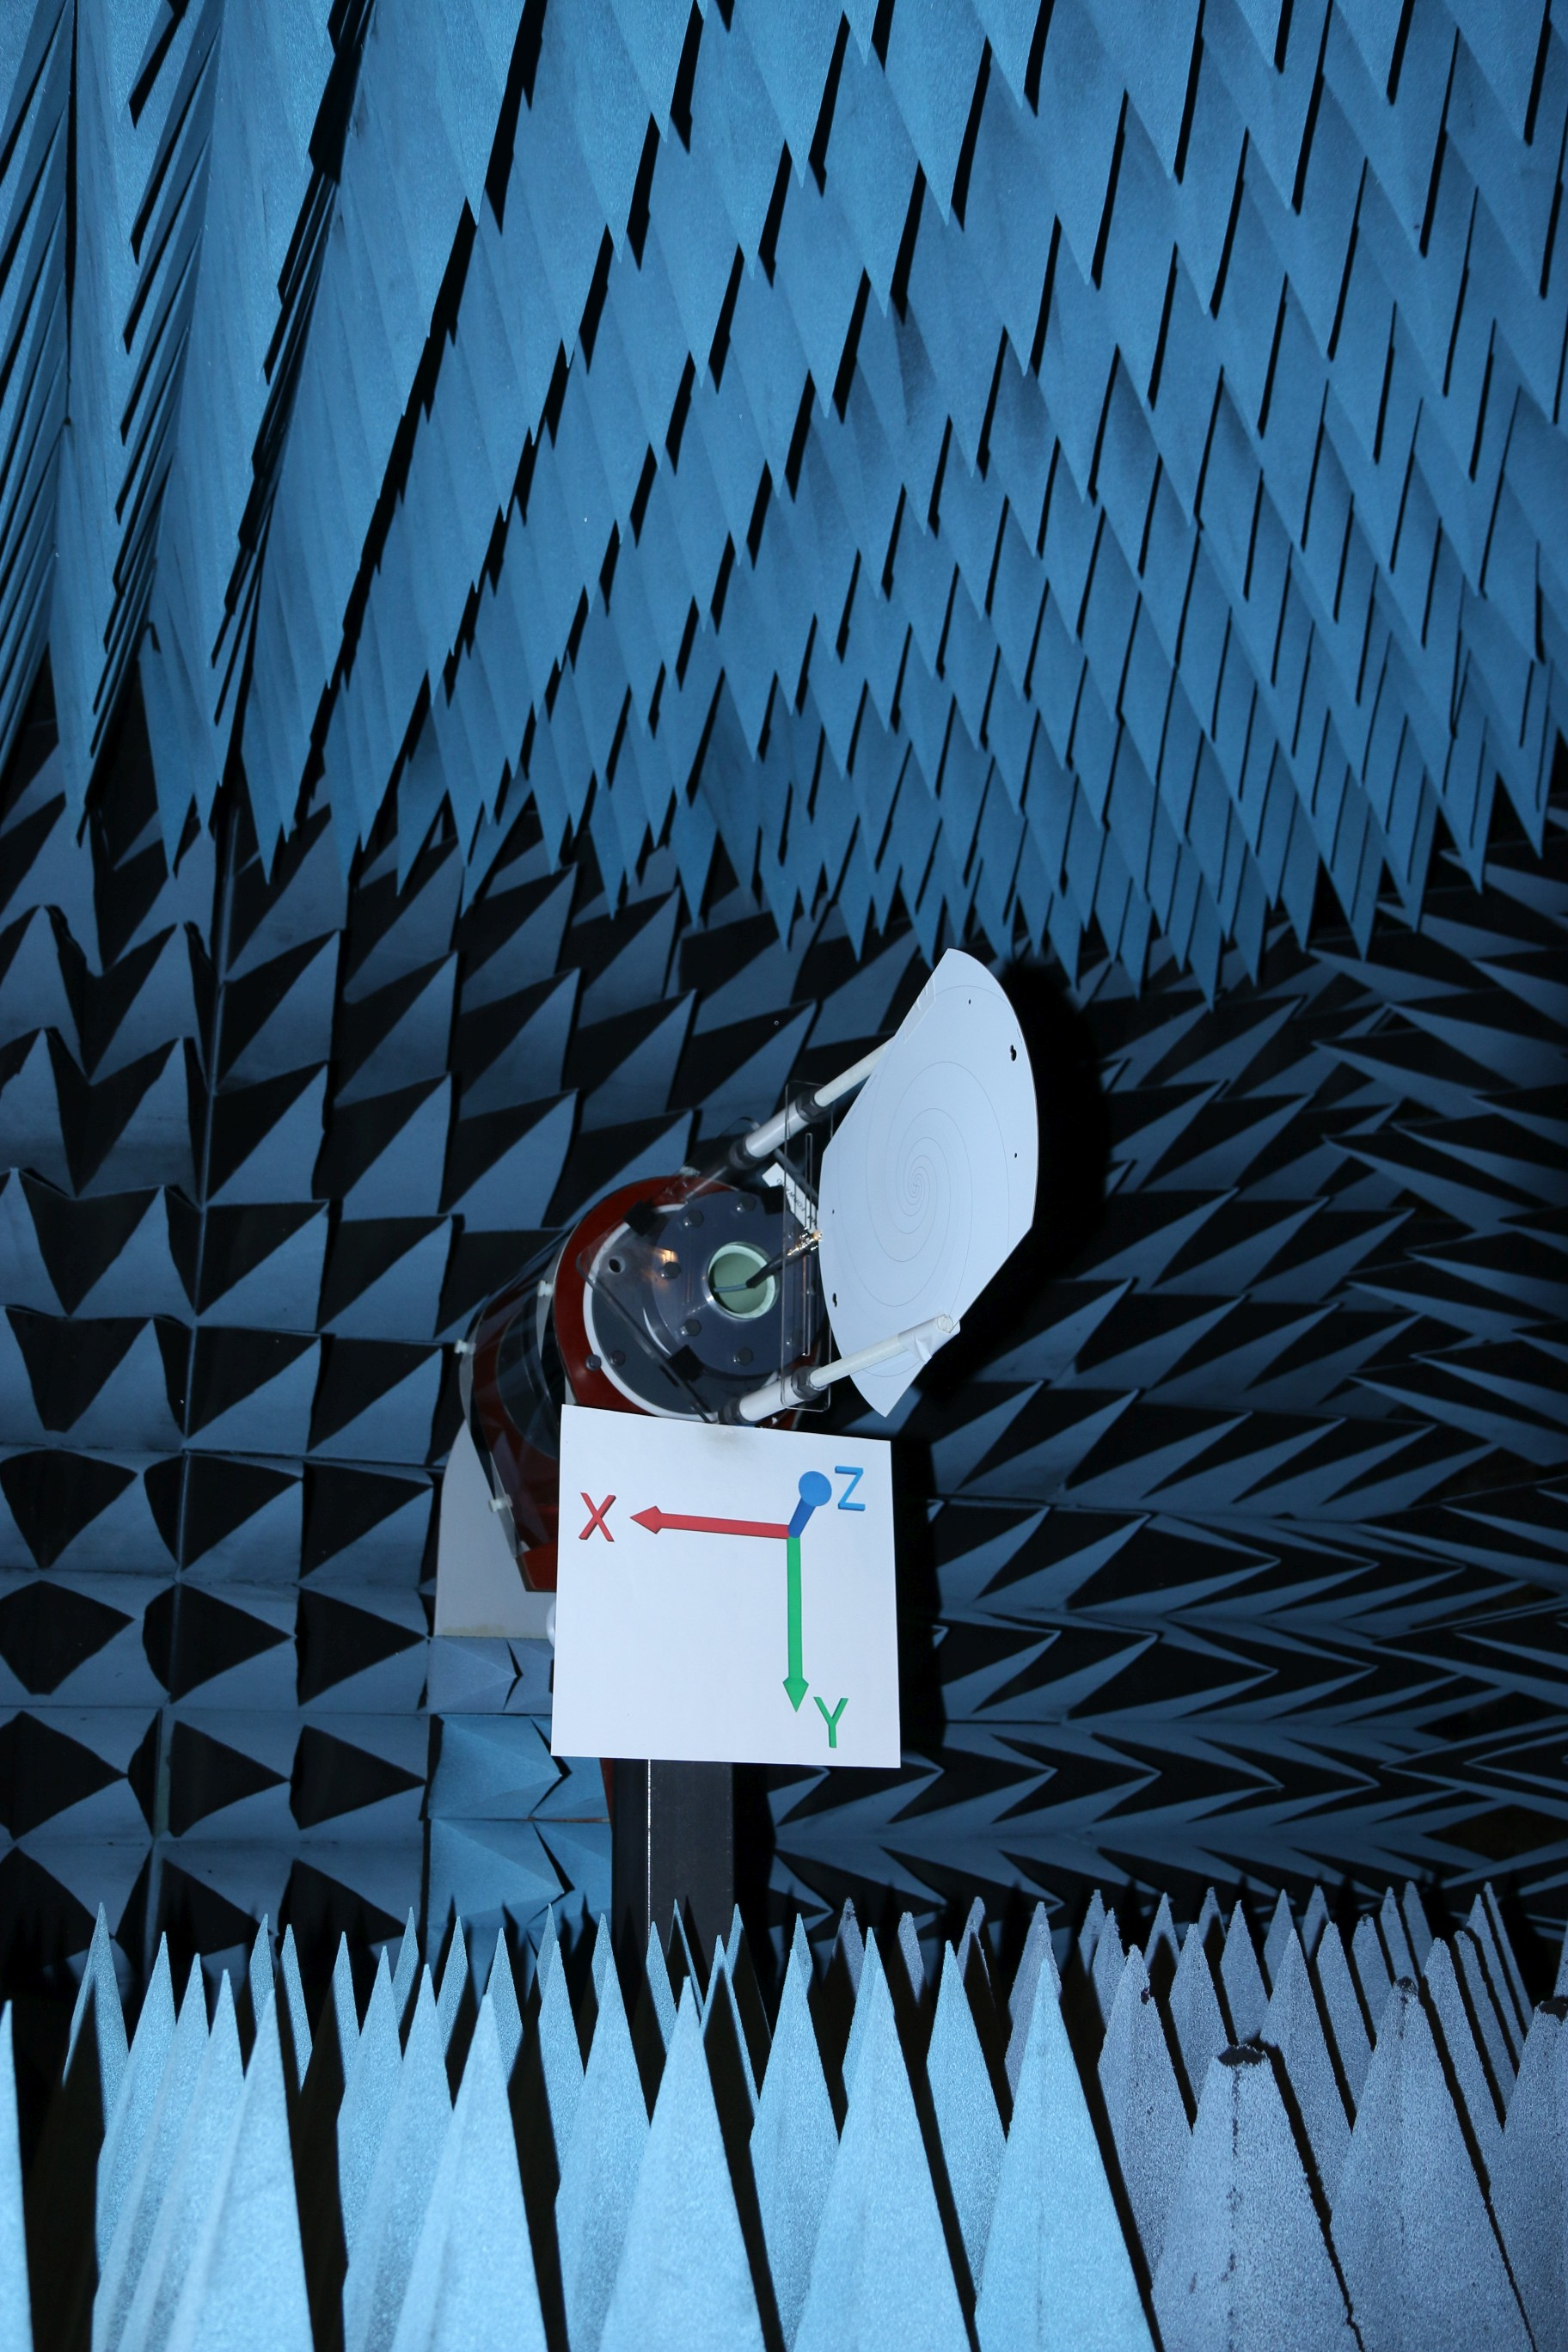 Log Periodic Spiral Antenna Gain Pattern Testing In Anechoic Chamber Far